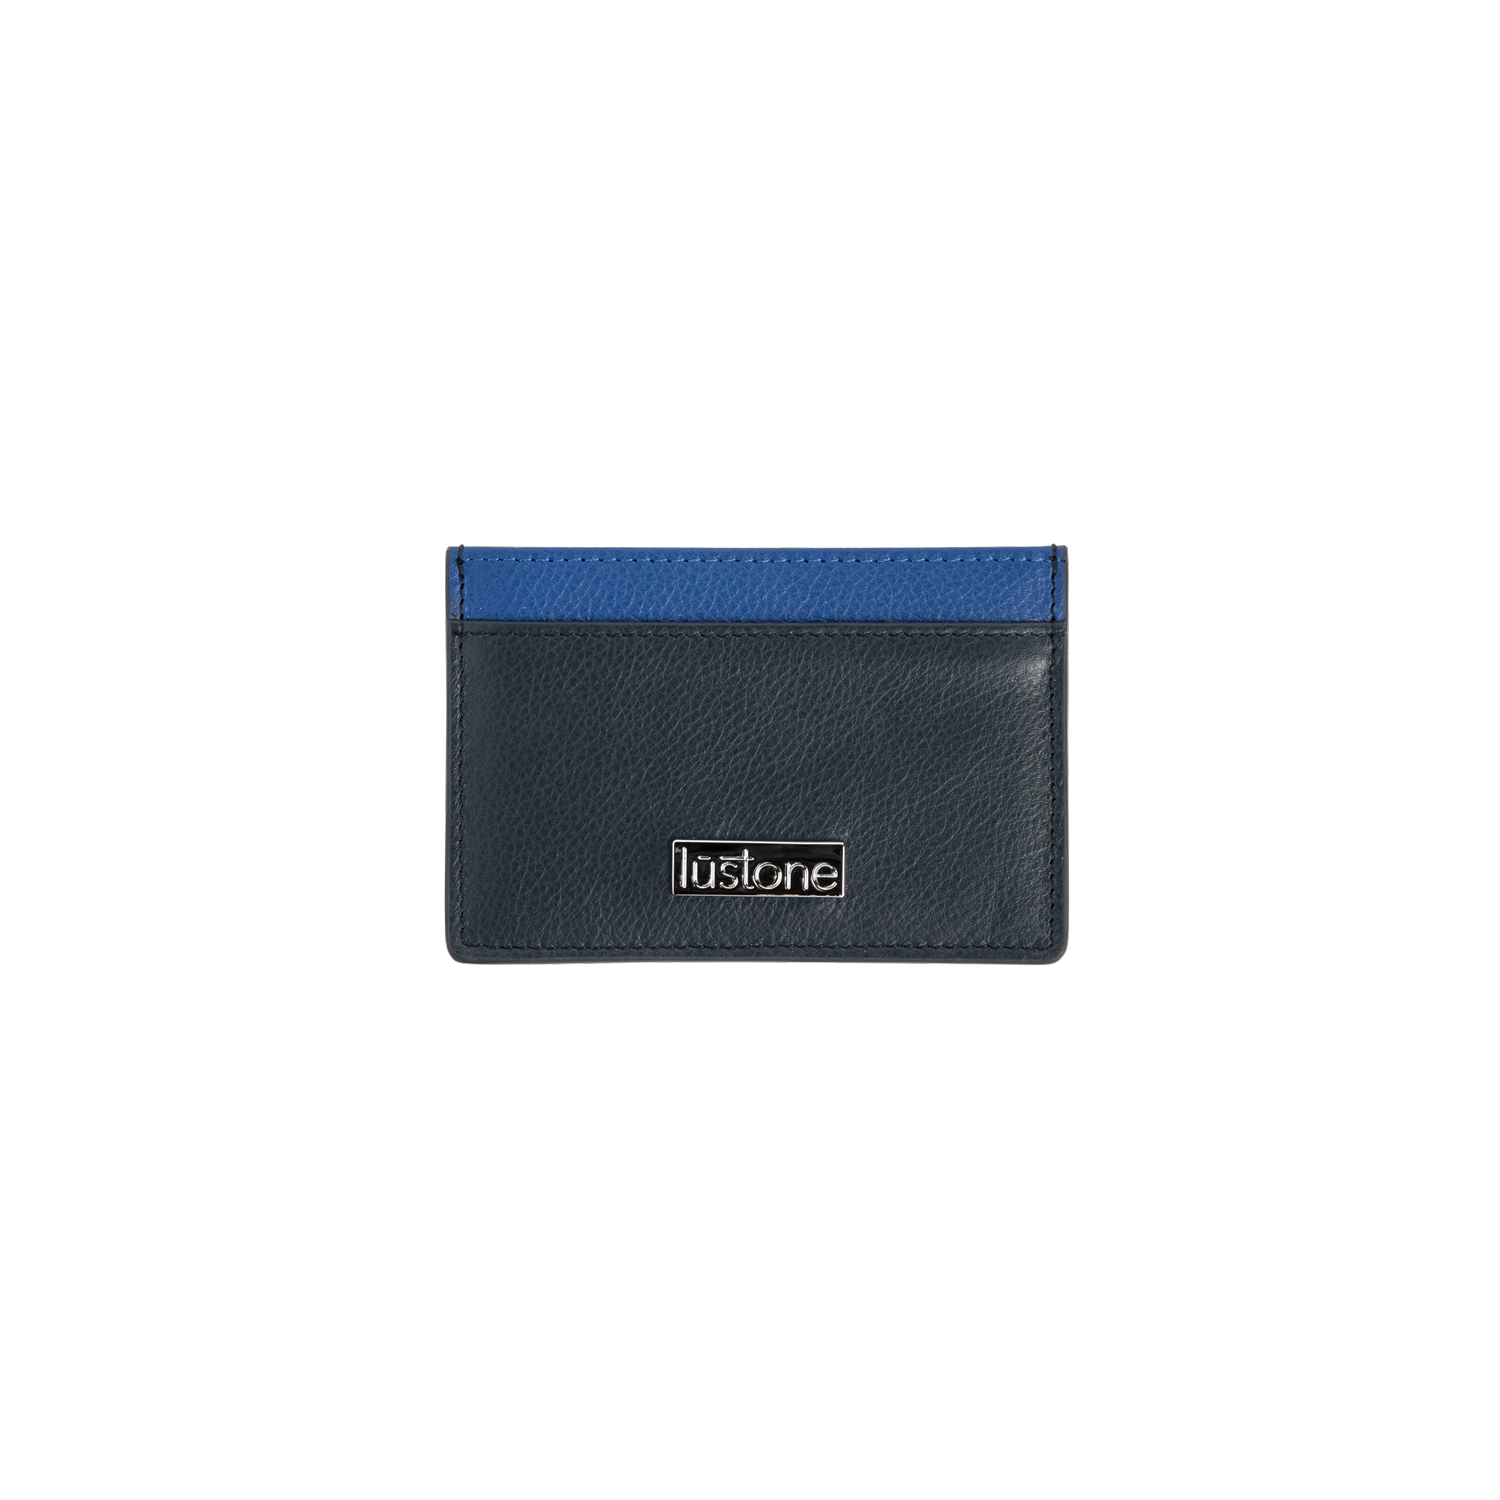 544023569 Card Wallet - Lustone | Stylish Leather Bags and Accessories